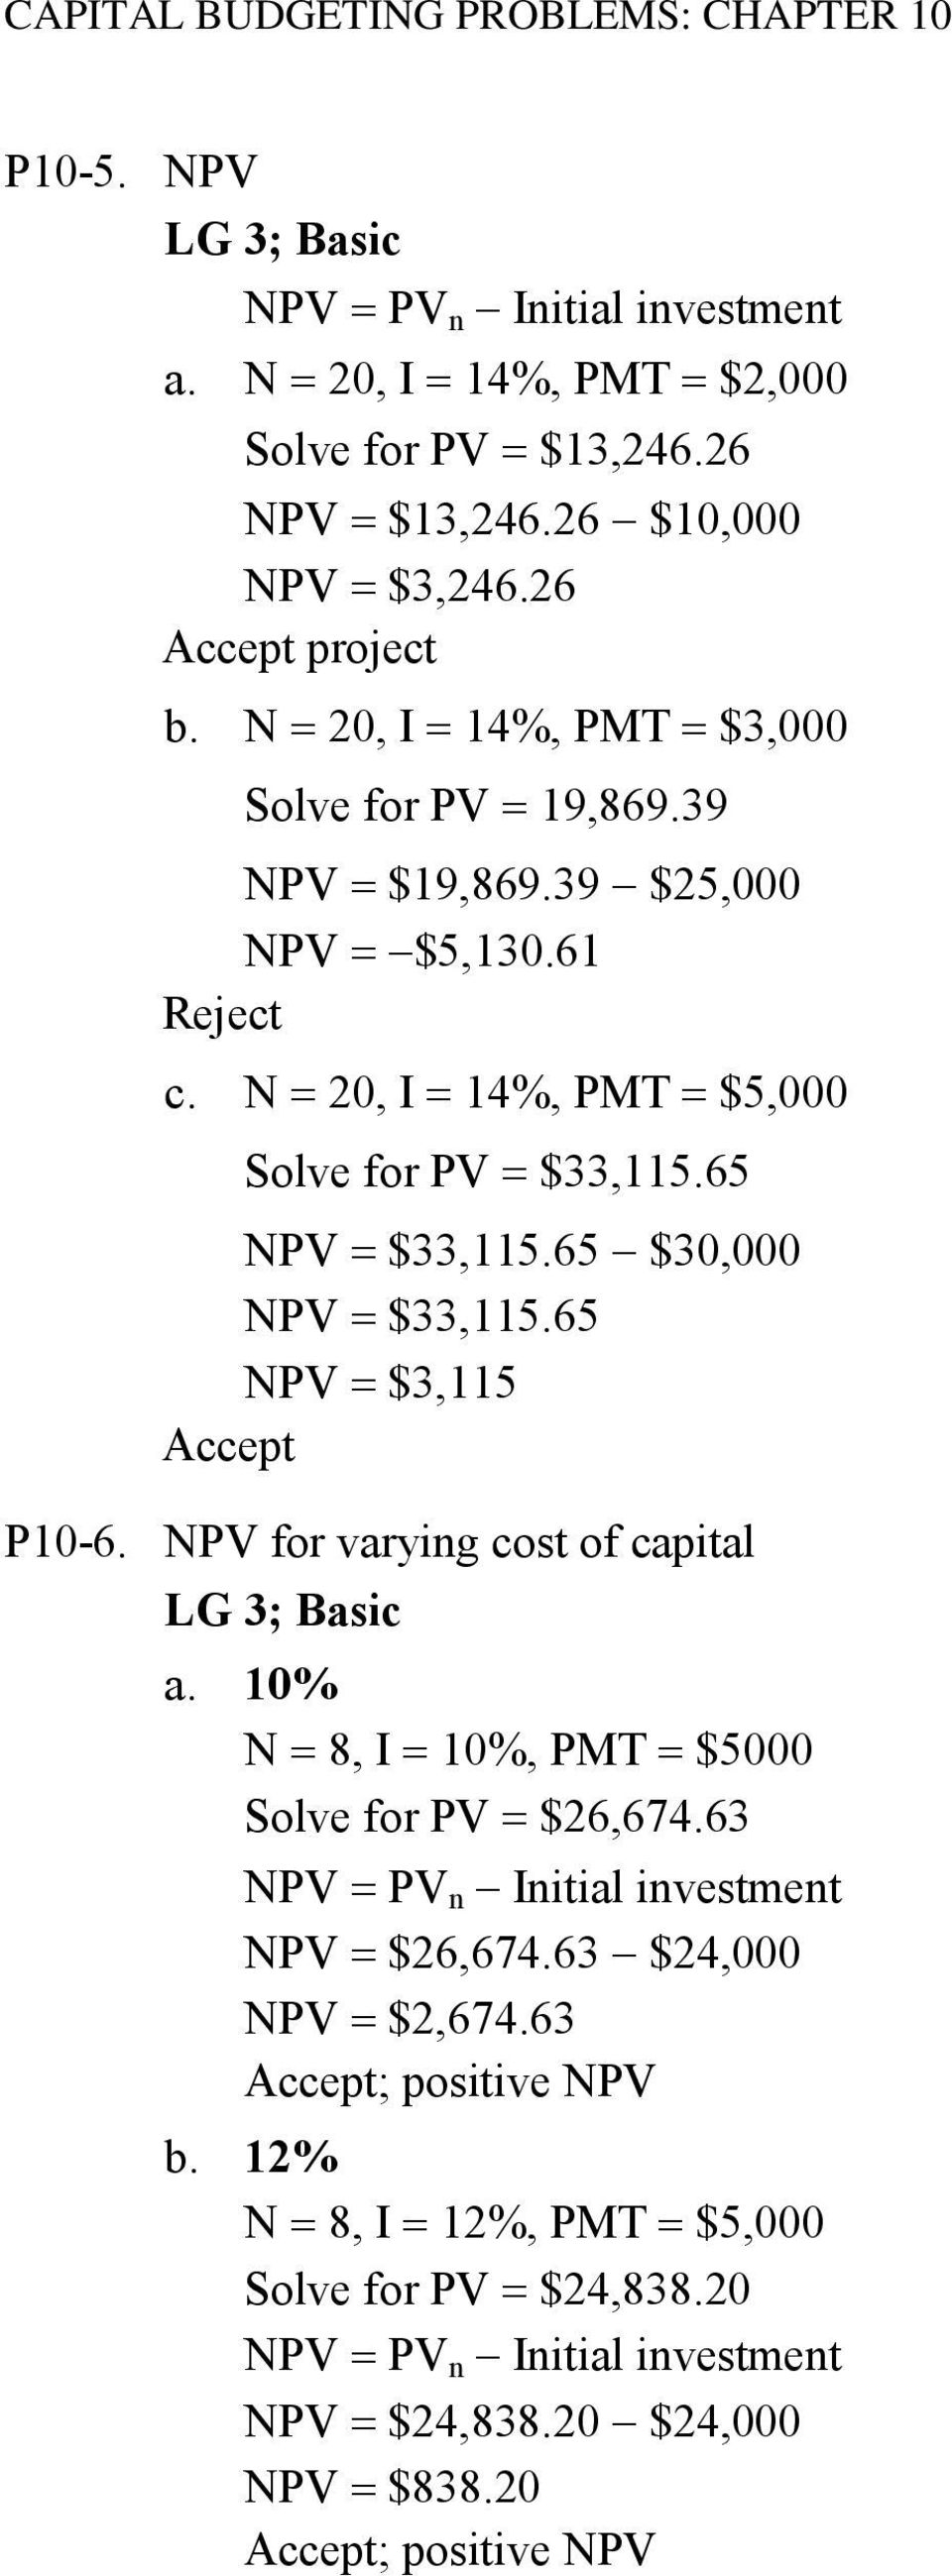 65 $30,000 NPV $33,115.65 NPV $3,115 Accept P10-6. NPV for varying cost of capital LG 3; Basic a. 10% N 8, I 10%, PMT $5000 Solve for PV $26,674.